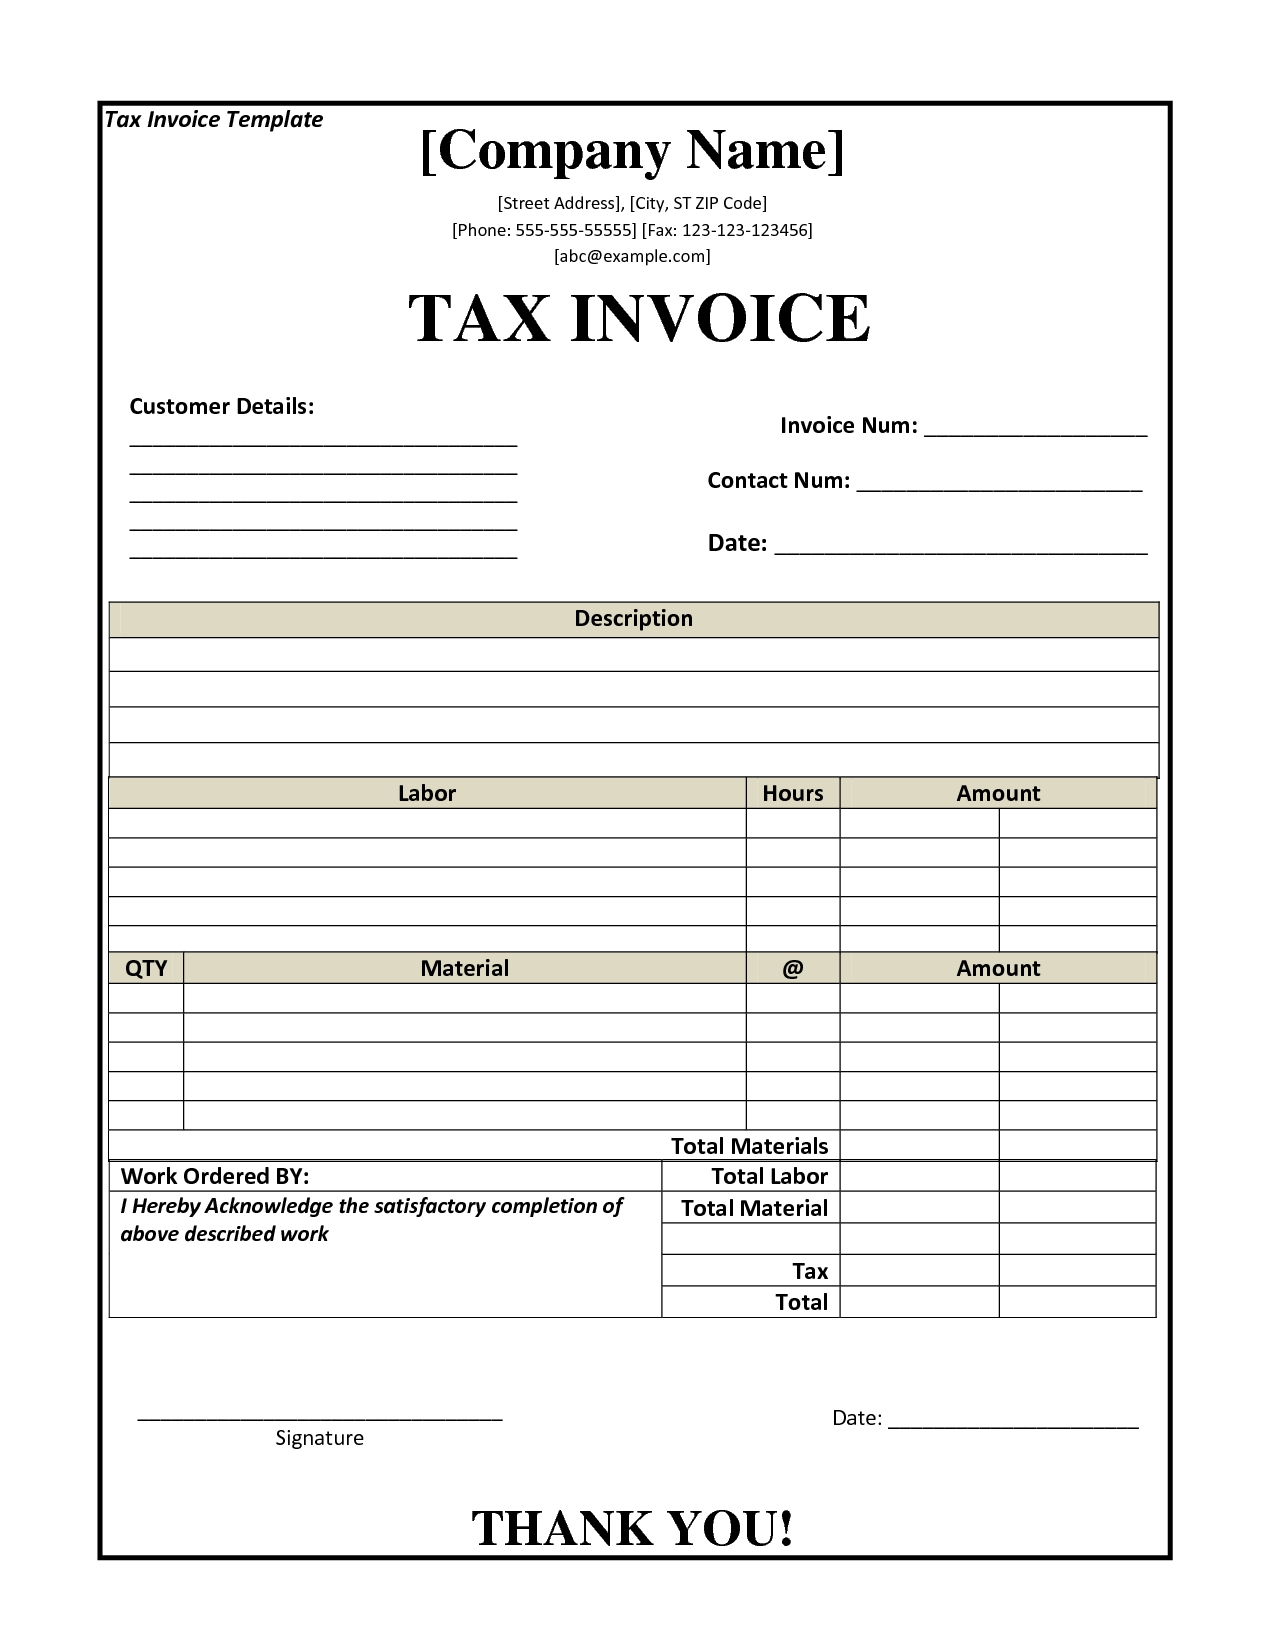 tax invoice template excel service invoice sample service example of tax invoice